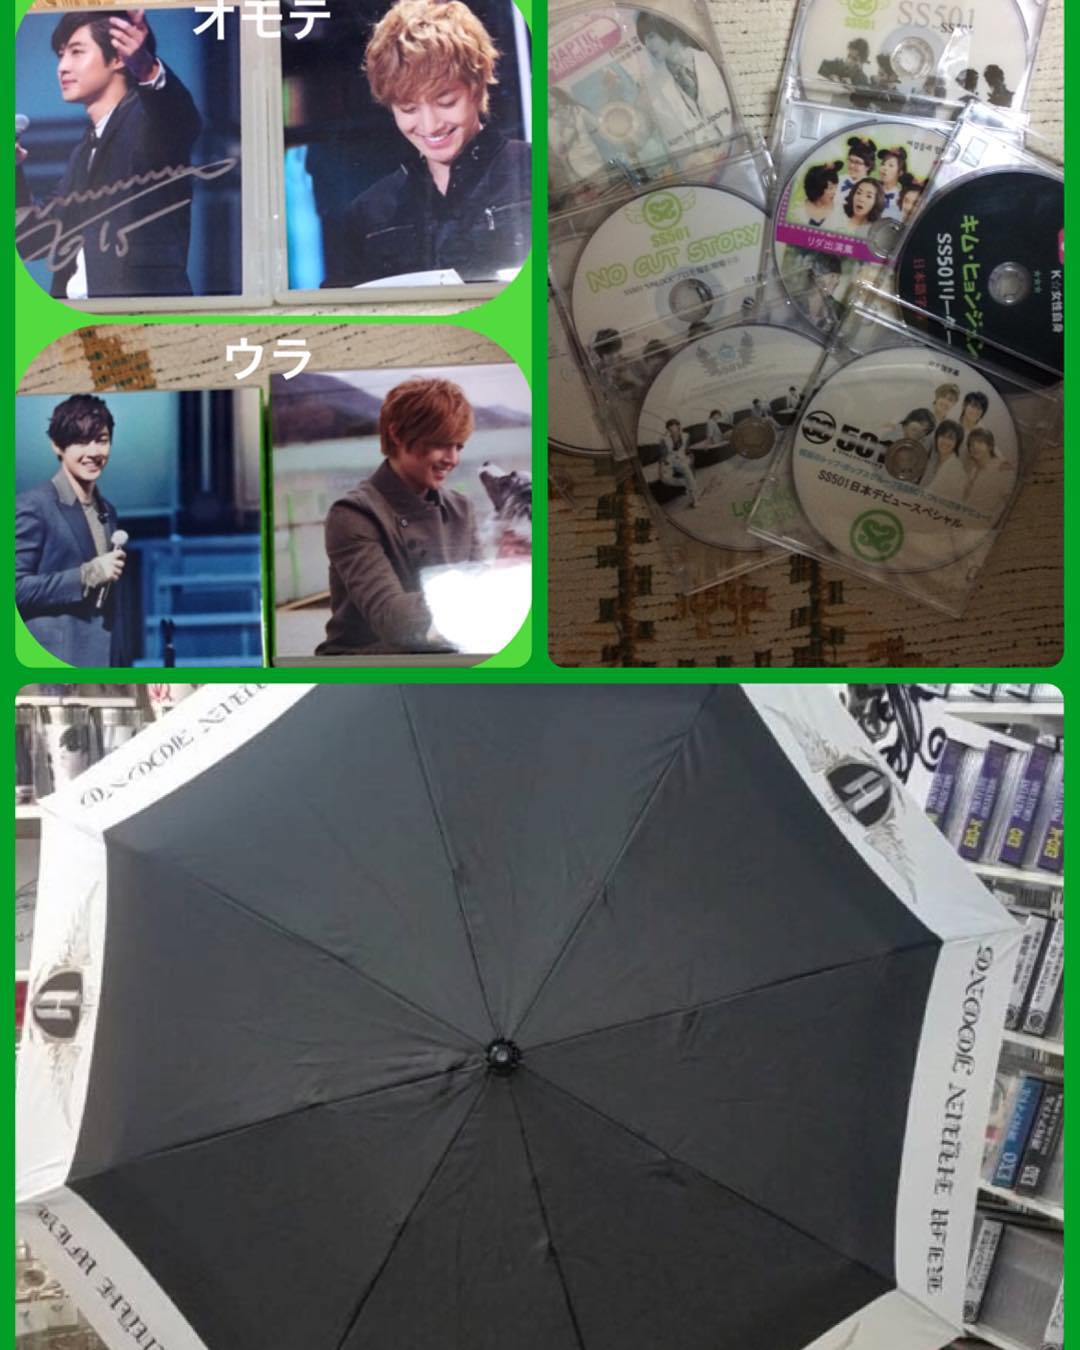 Hyun Joong Umbrella and DVD Case